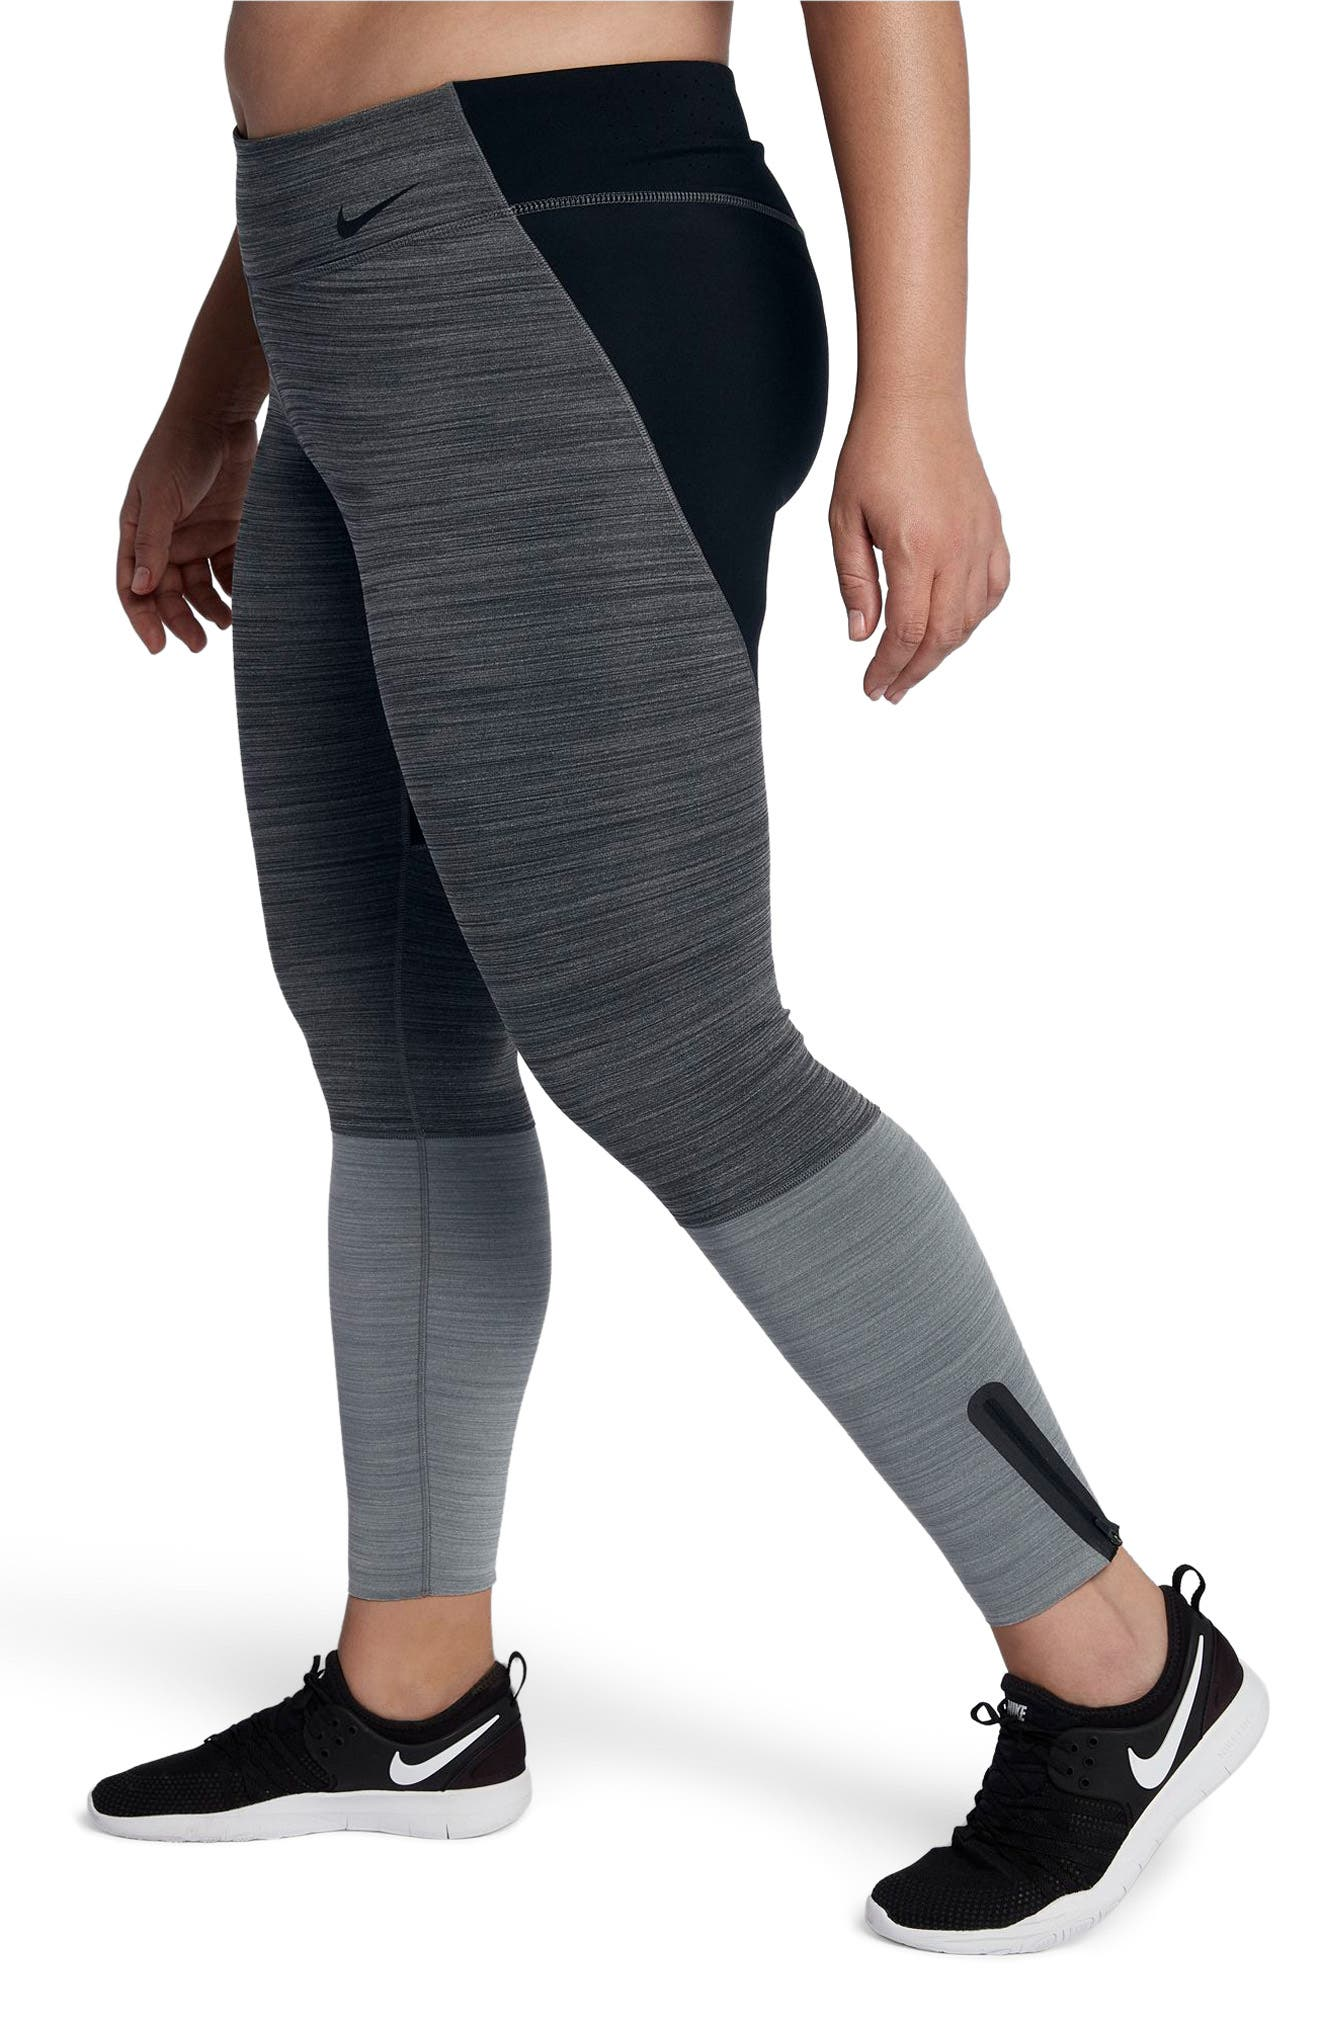 Legendary Training Tights,                             Alternate thumbnail 5, color,